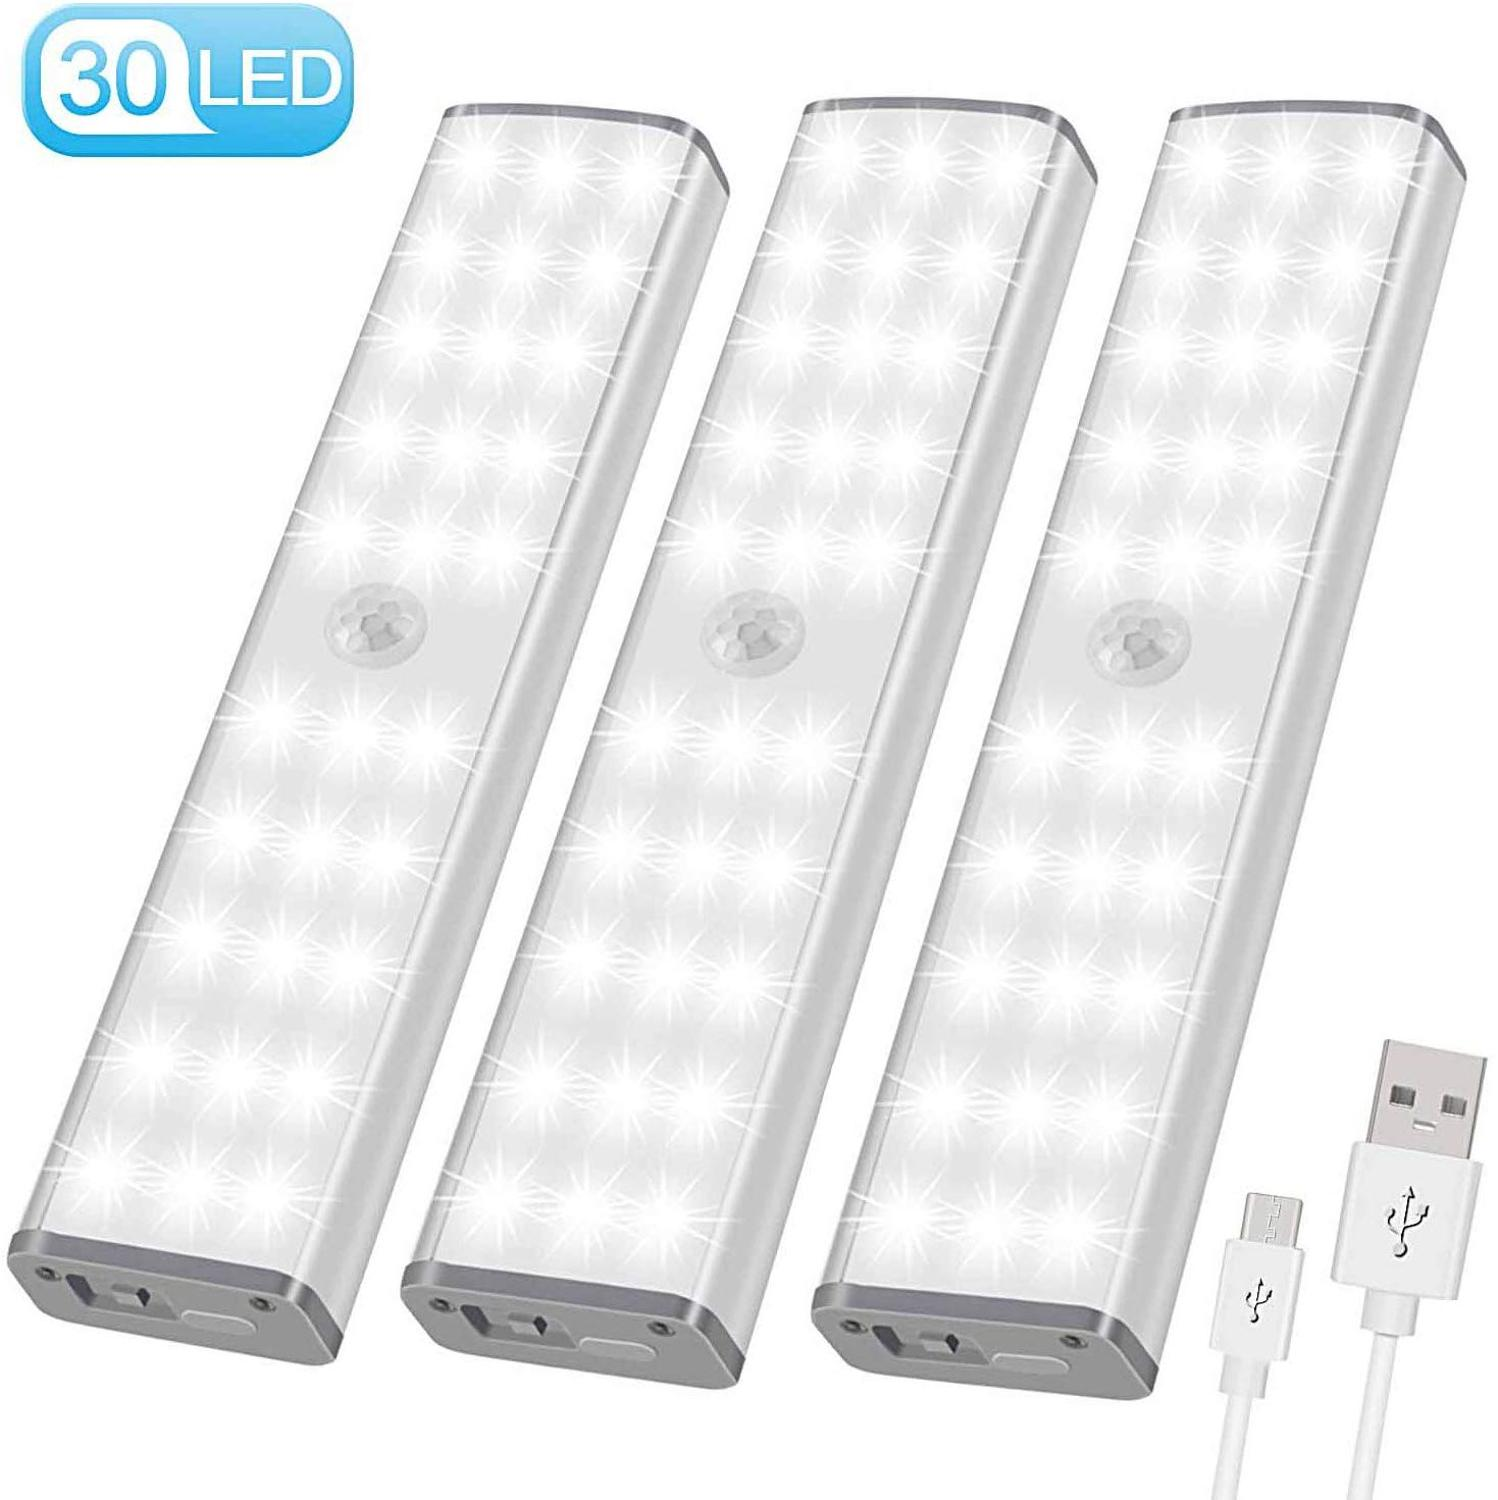 PIR Motion Sensor LED Light USB Wireless LED Kitchen/Wall Lamp 3Mode Brightness Level 30 LED Closet/Wardrobe/Under Cabinet Light 1